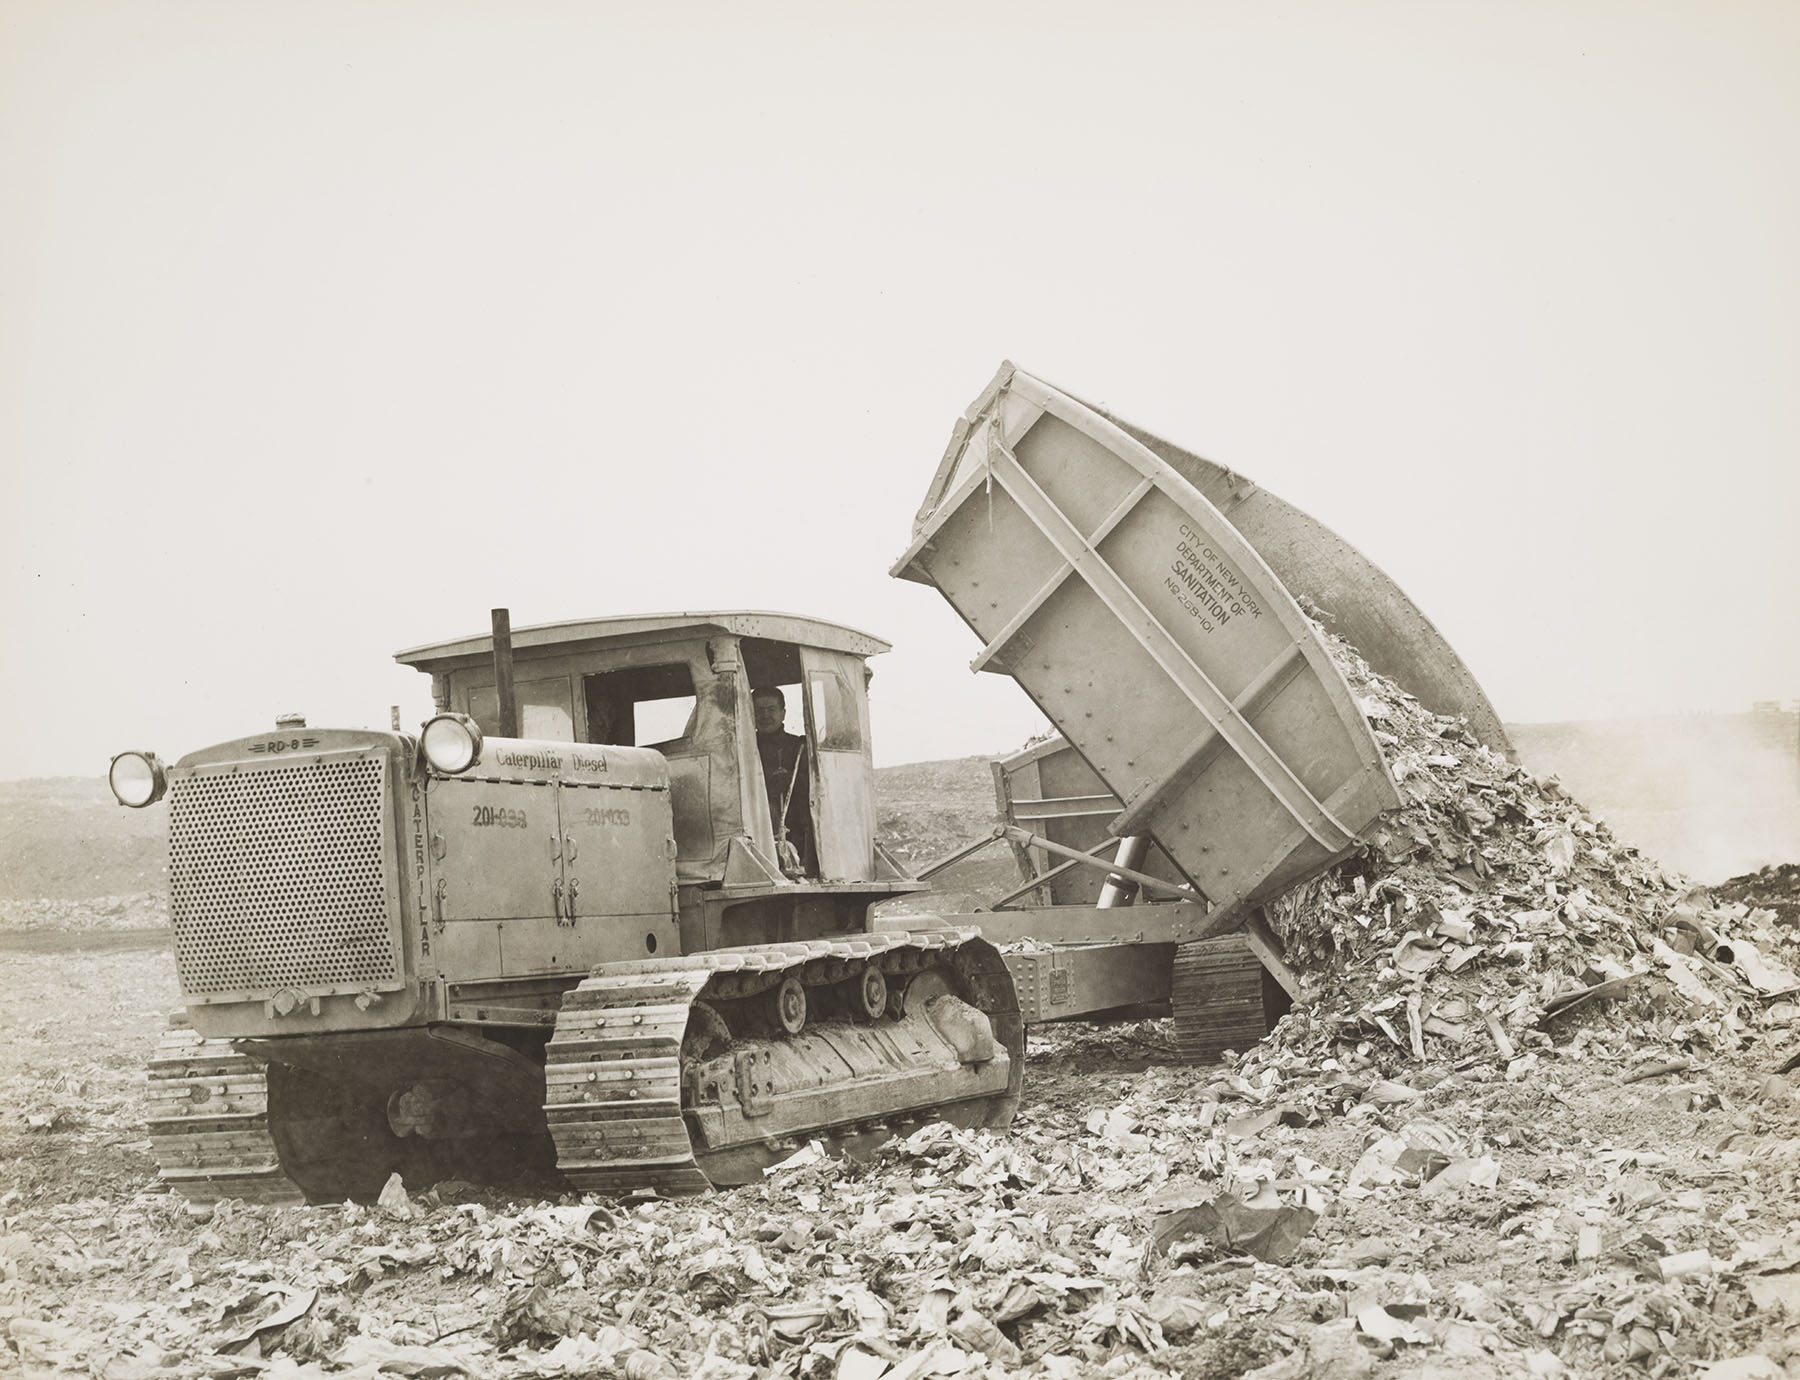 MAC_1058: Department of Sanitation tractor at Rikers Island Dump, ca. 1936. NYC Municipal Archives.